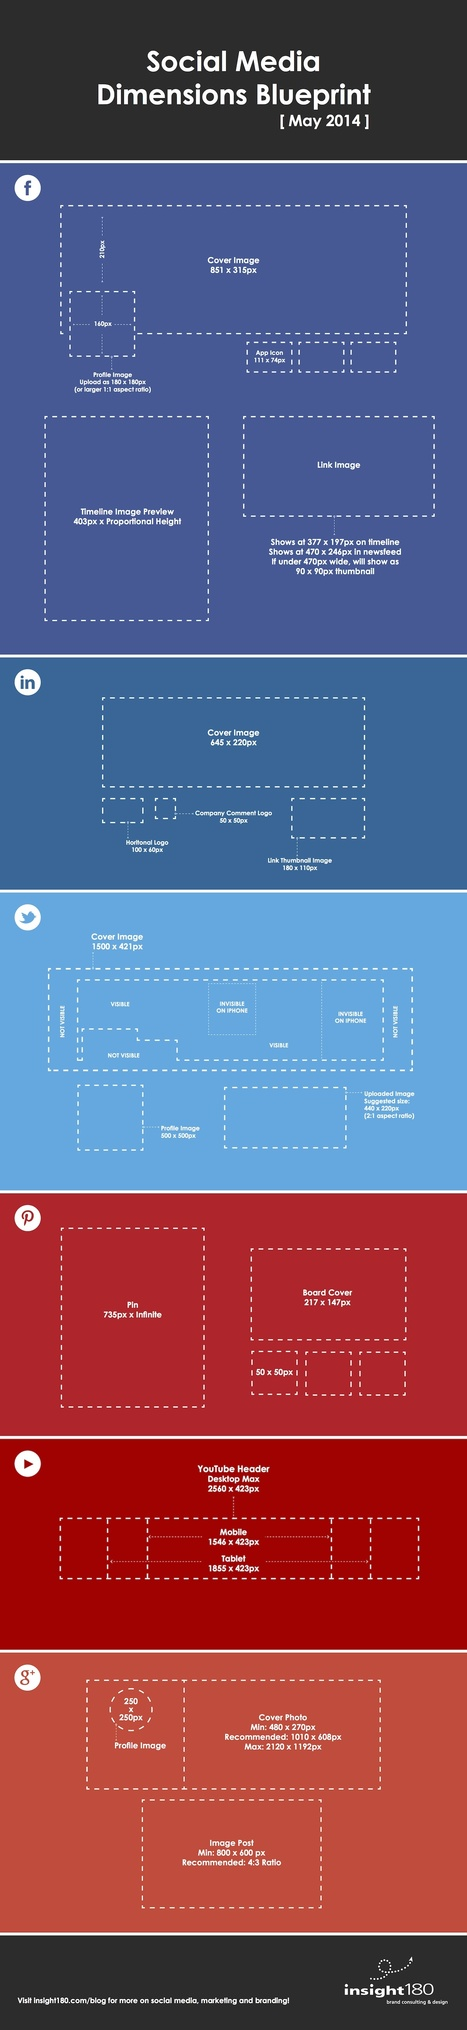 Facebook, LinkedIn, Twitter, Pinterest – Social Media Dimensions Guide [INFOGRAPHIC] | new knows | Scoop.it